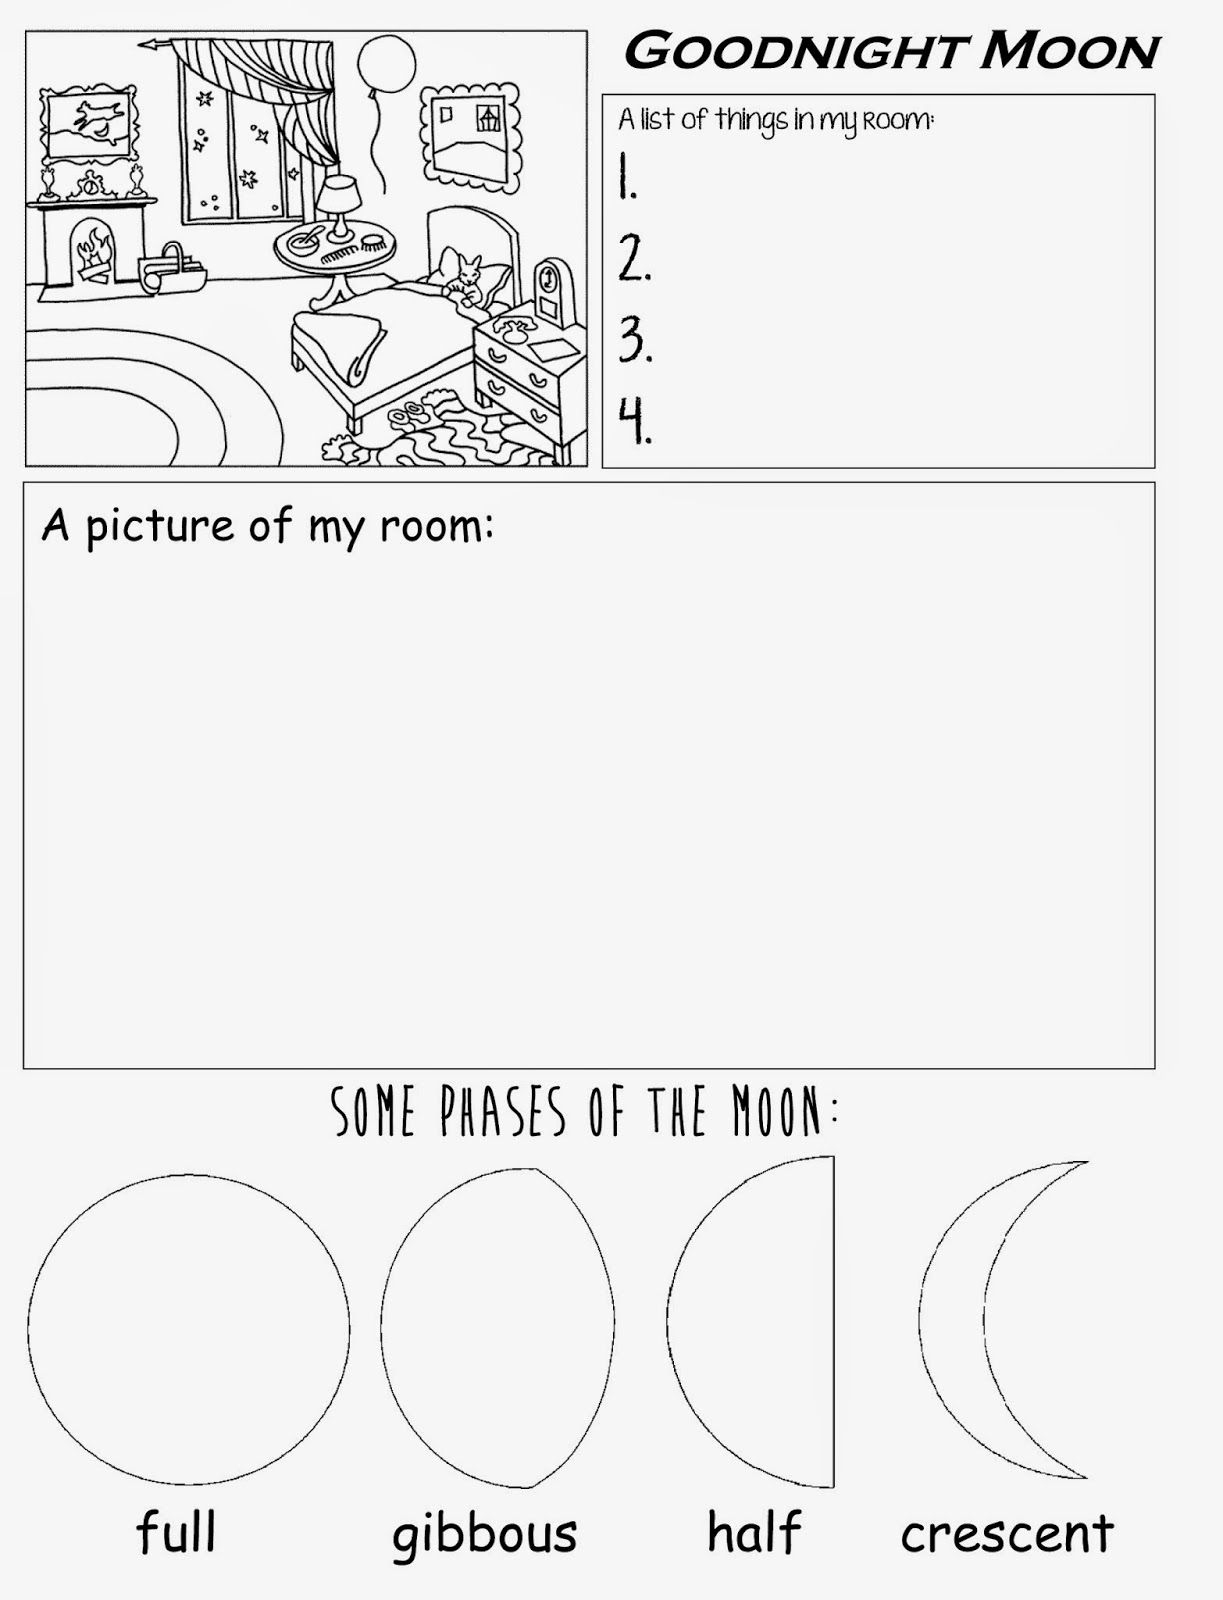 Goodnight Moon Free Printable Worksheet For Preschool Kindergarten | Goodnight Moon Printable Worksheets